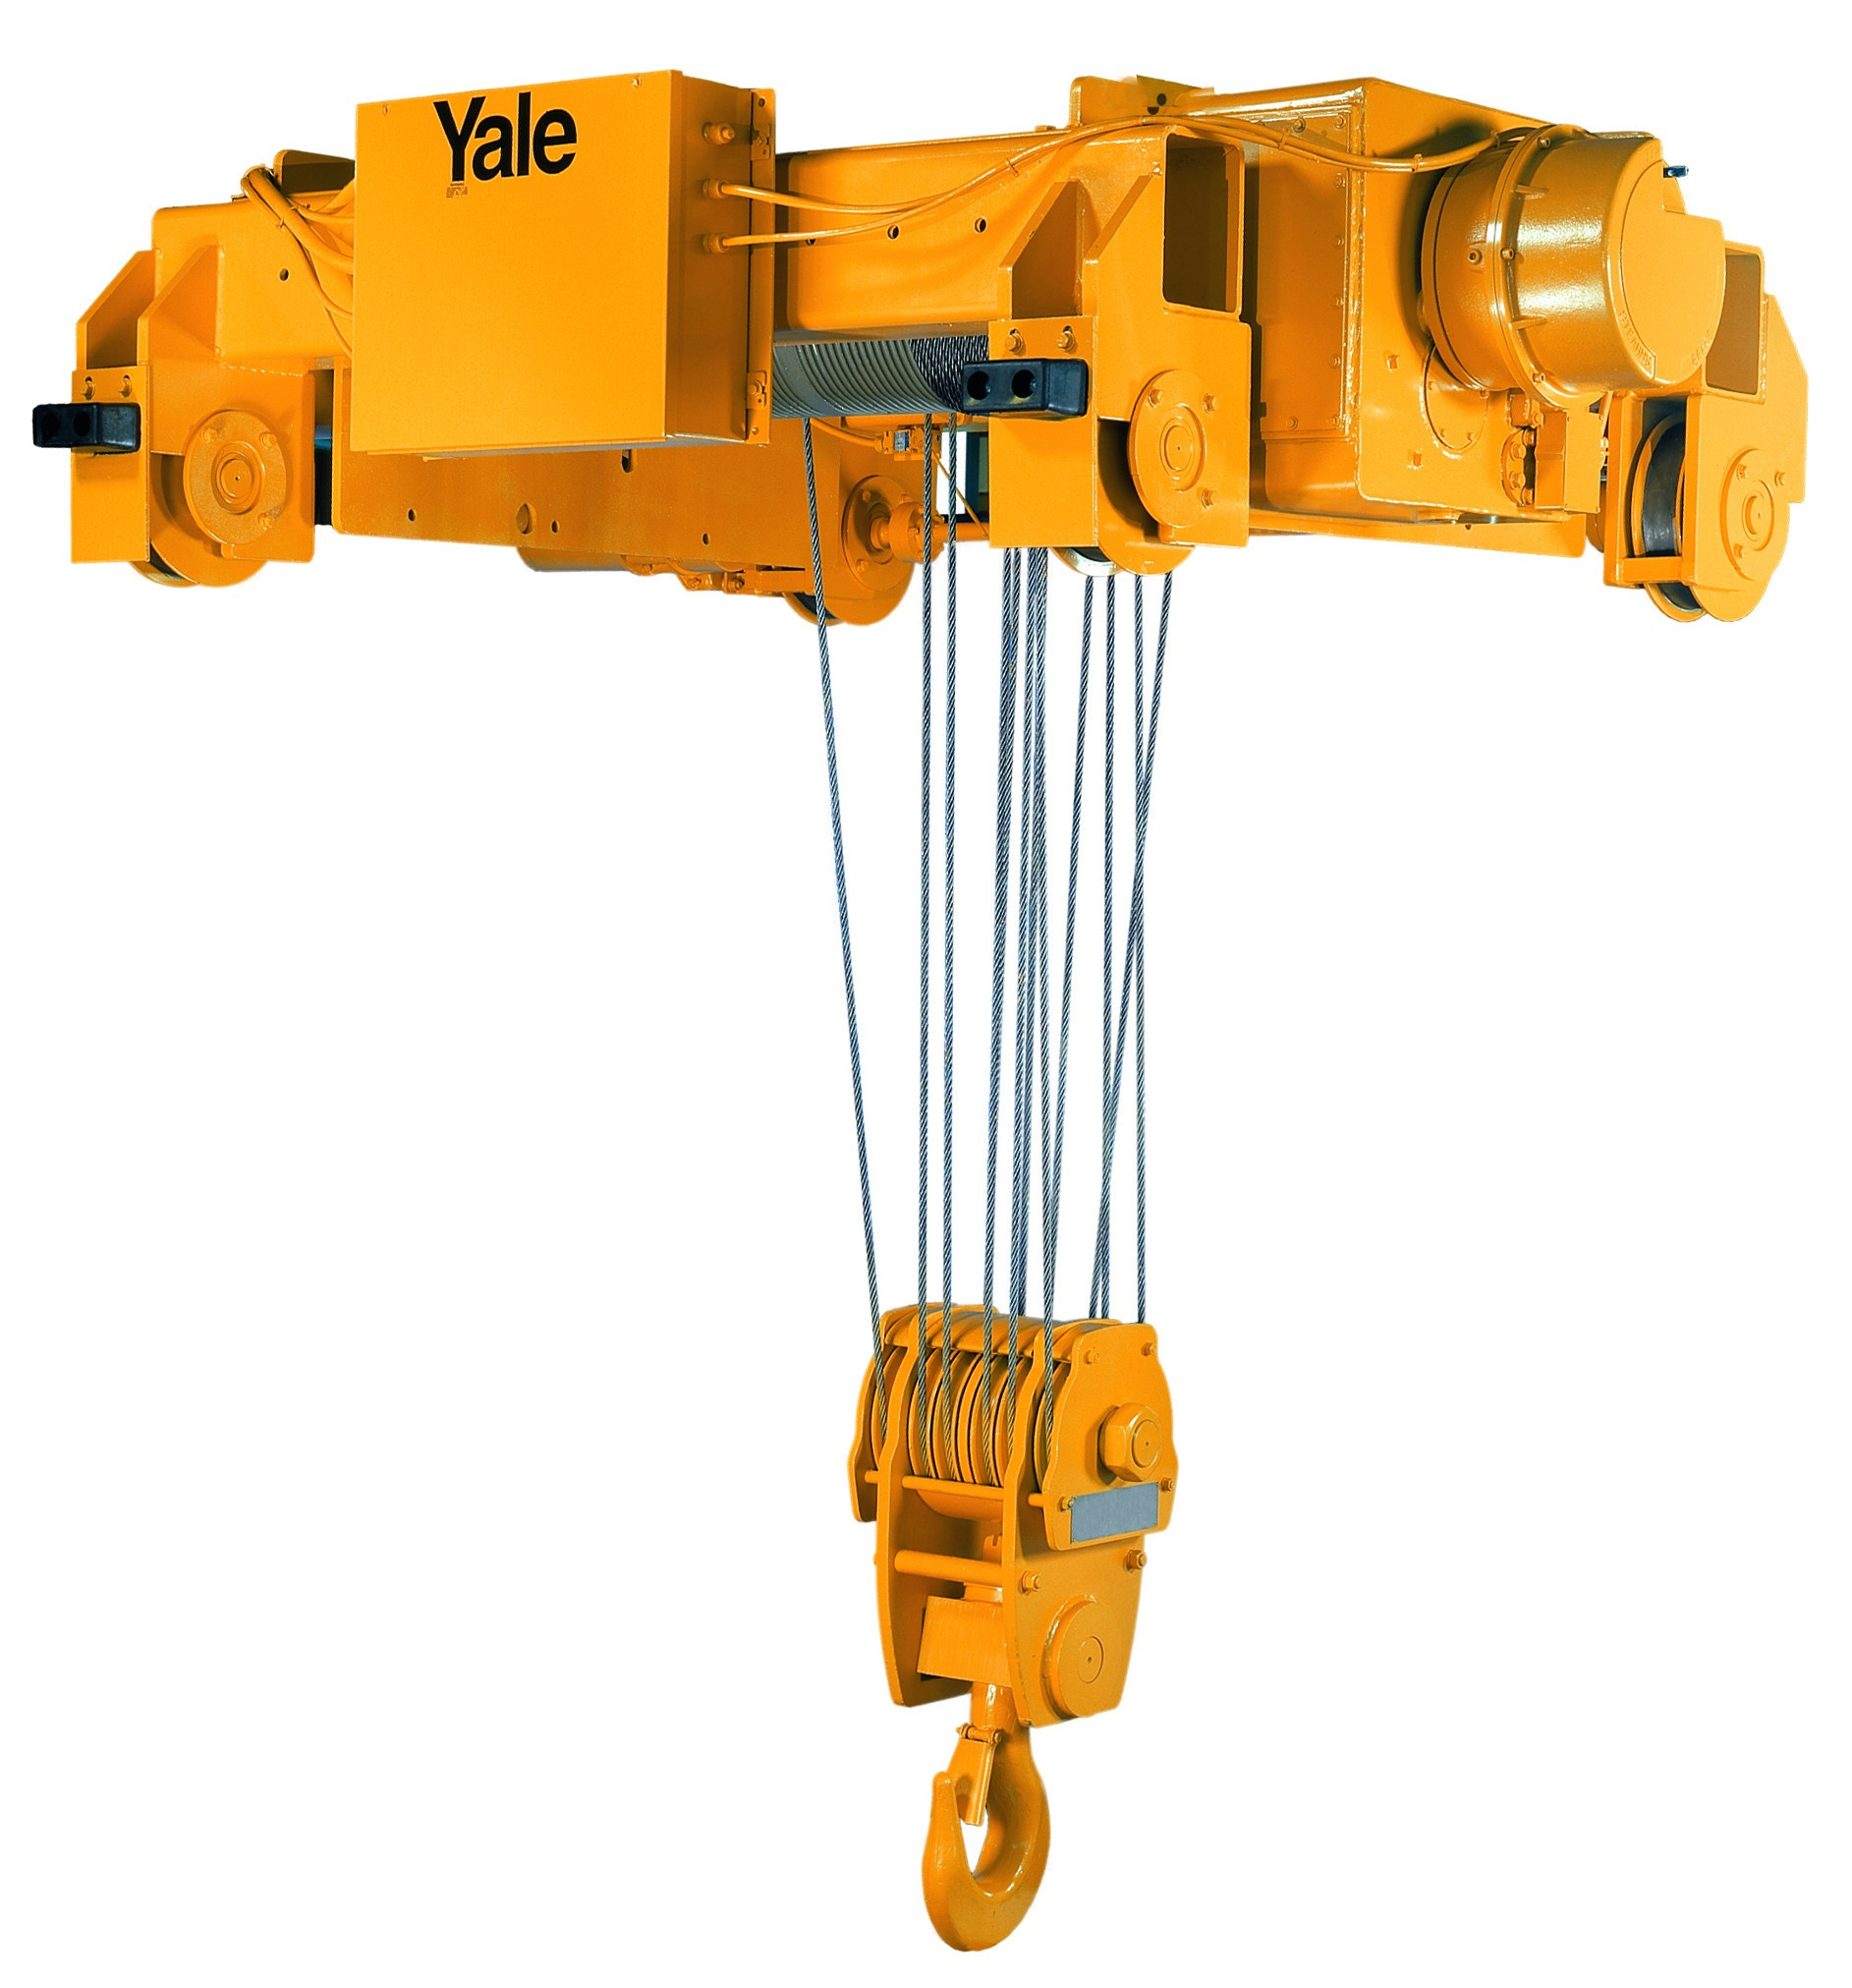 YALE - Cable King 15 Ton Electric Wire Rope Hoist (18fpm & 87' Lift Double Reeve)